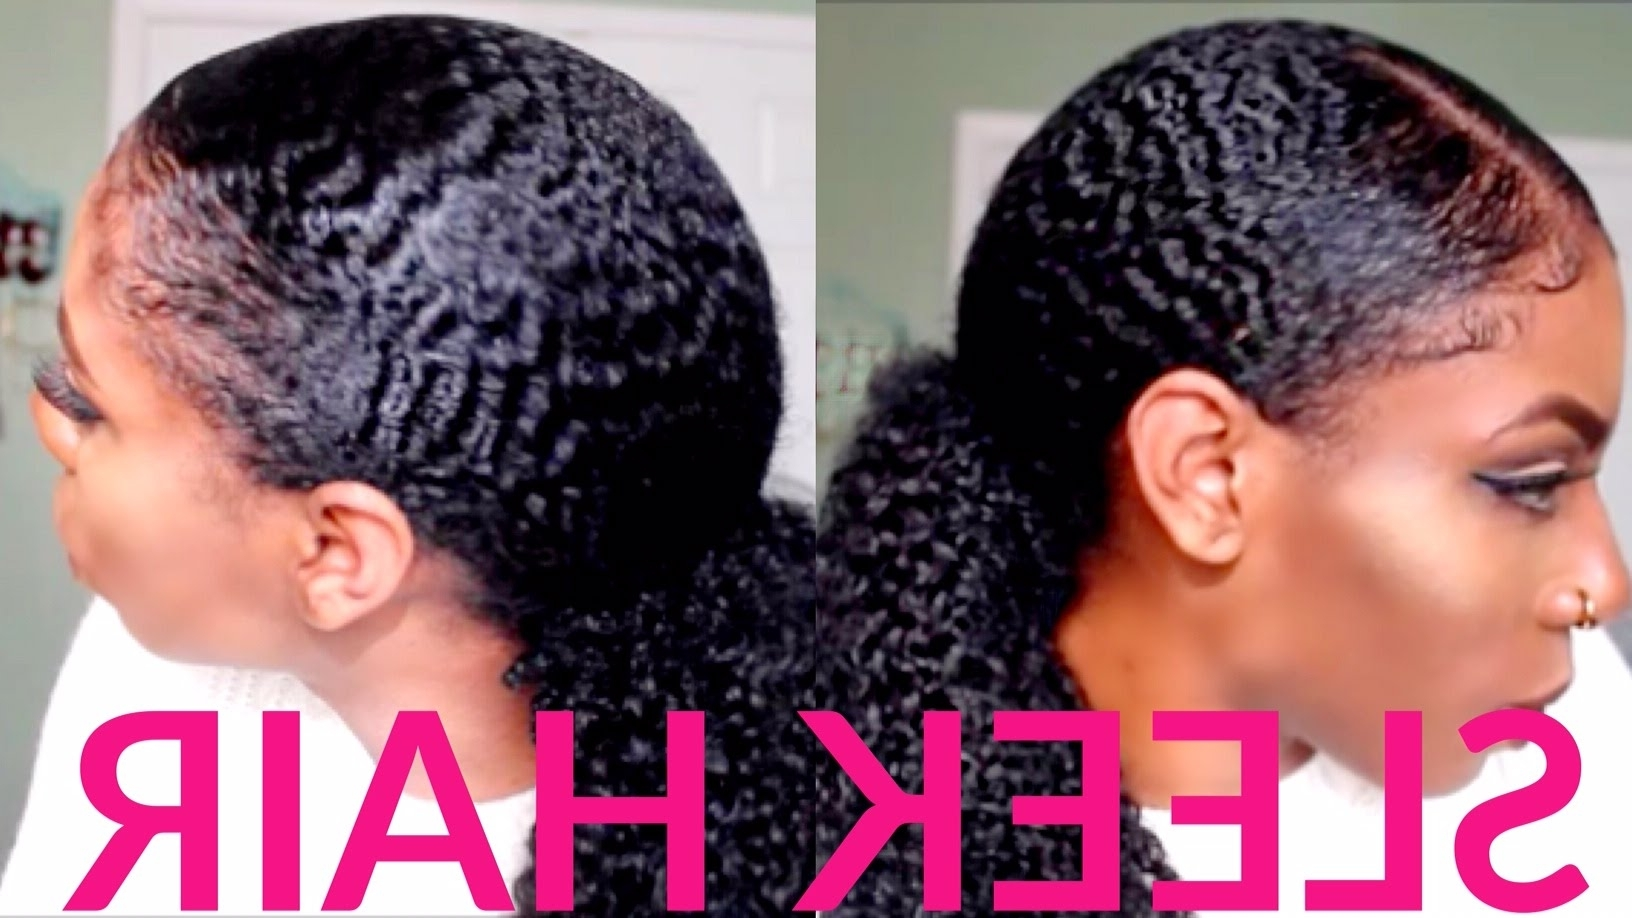 Amazing How To Wavy Curly Sleek Pony Tail With Baby Clip Ins Of Fake Inside Favorite Sleek Ponytail Hairstyles With Waves (View 7 of 20)